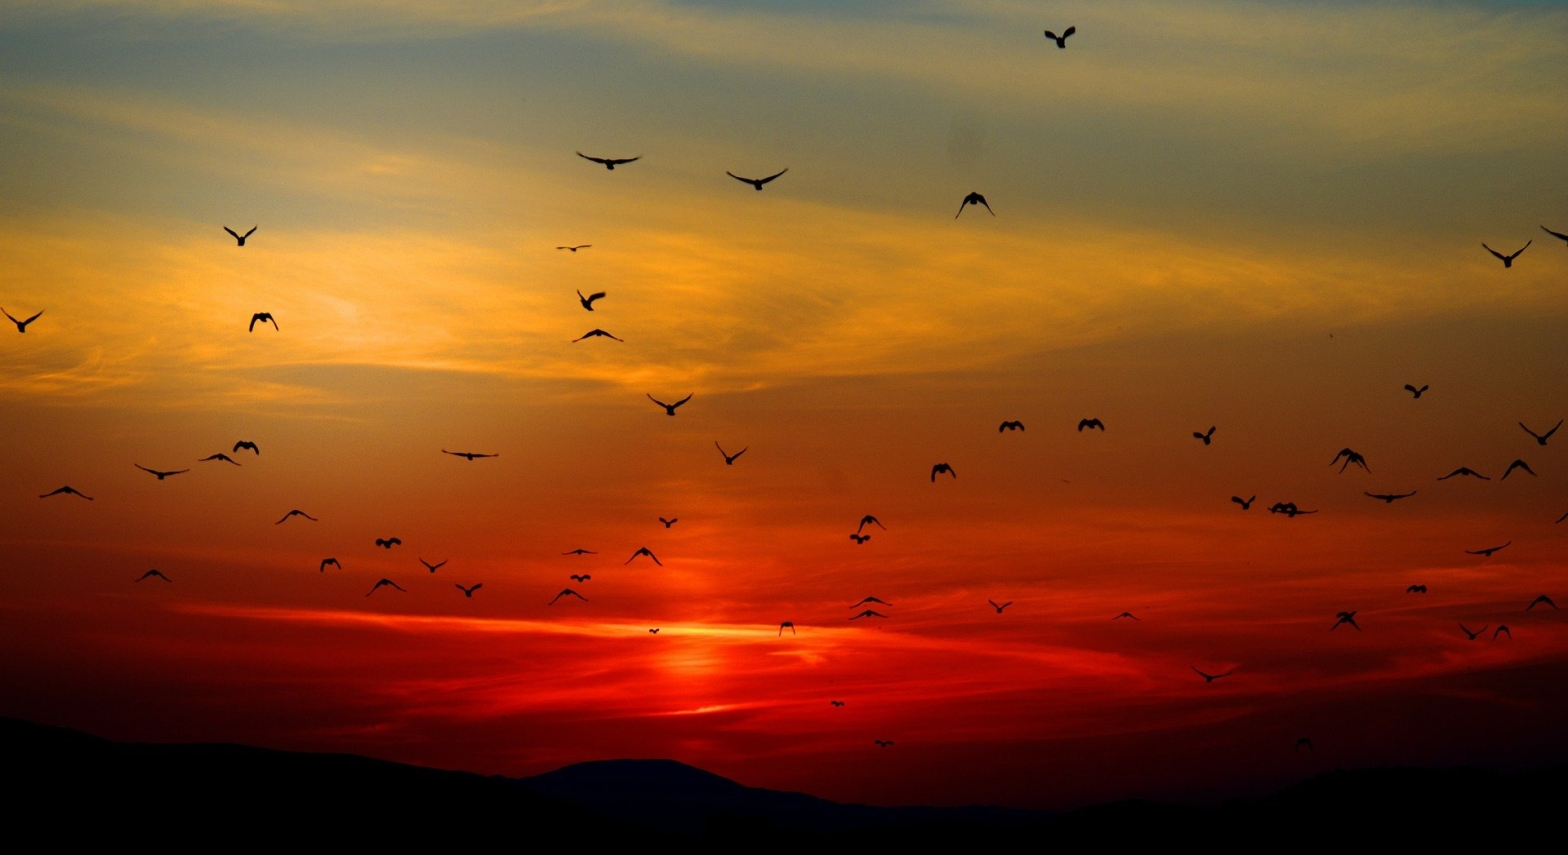 Poem : Shadowed dark rising mountains in the horizon, the sky bleeding rawness in red, thin white clouds and flutters of a hundred birds flying from afar towards you